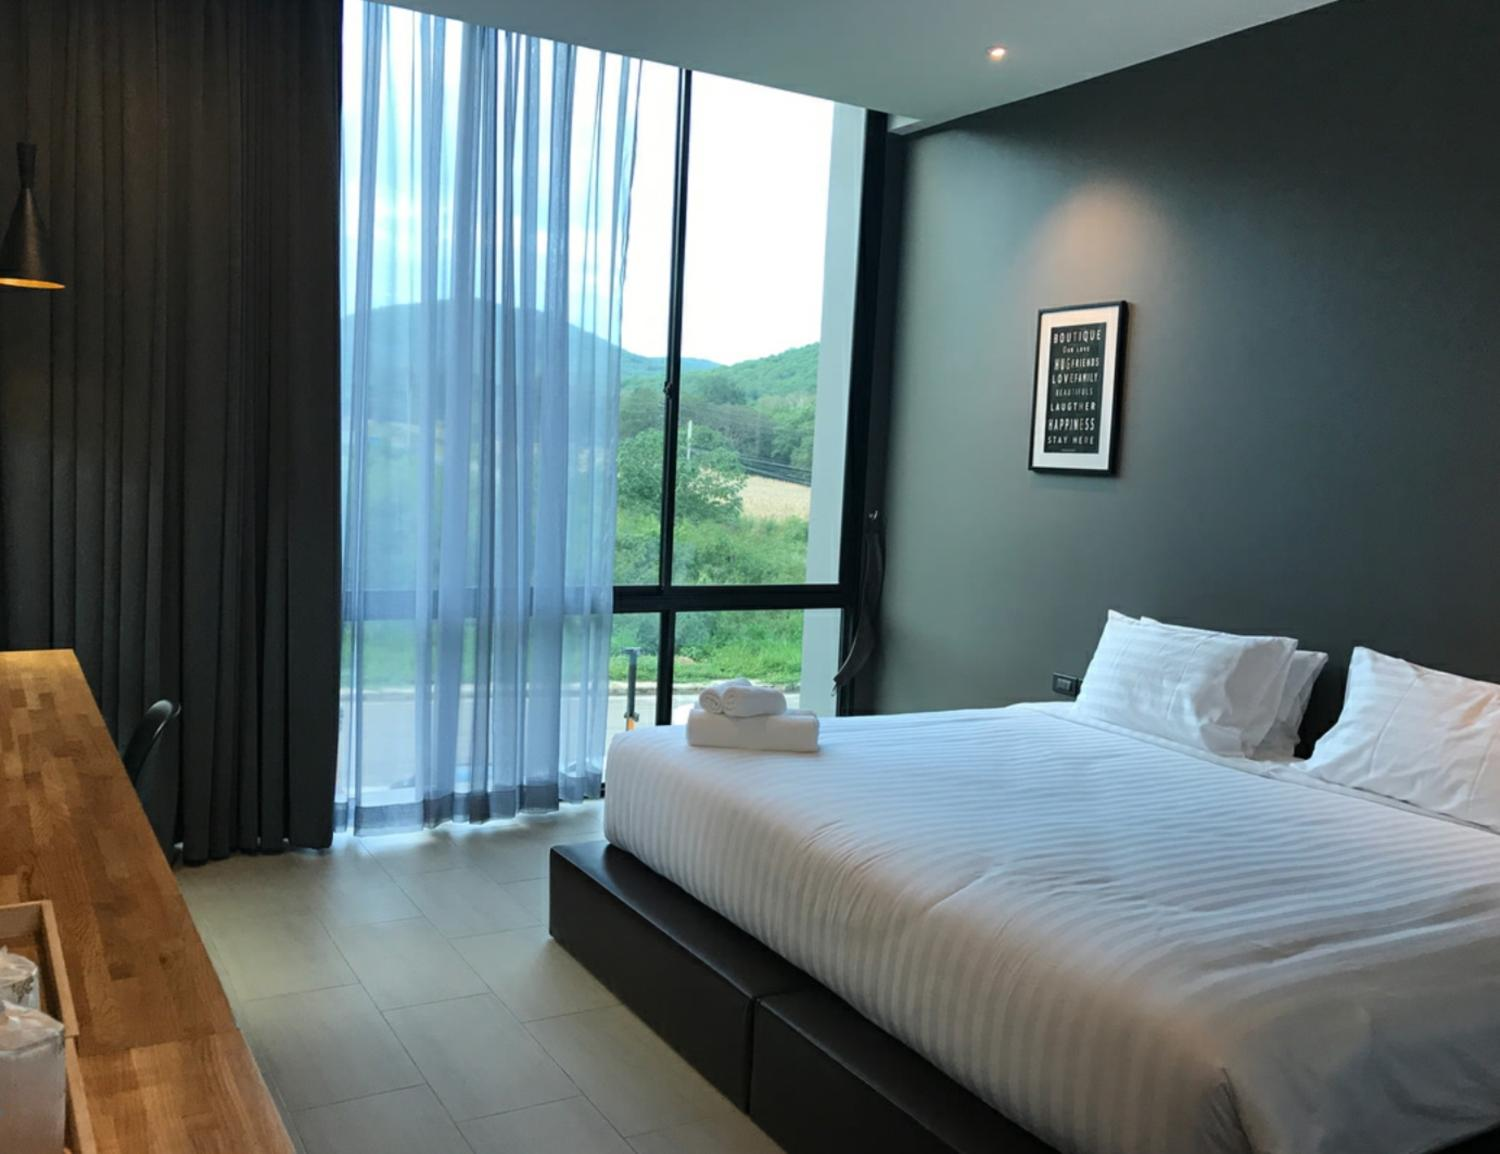 HOTEL TOGETHER in Khao Yai - Room Deals, Photos & Reviews